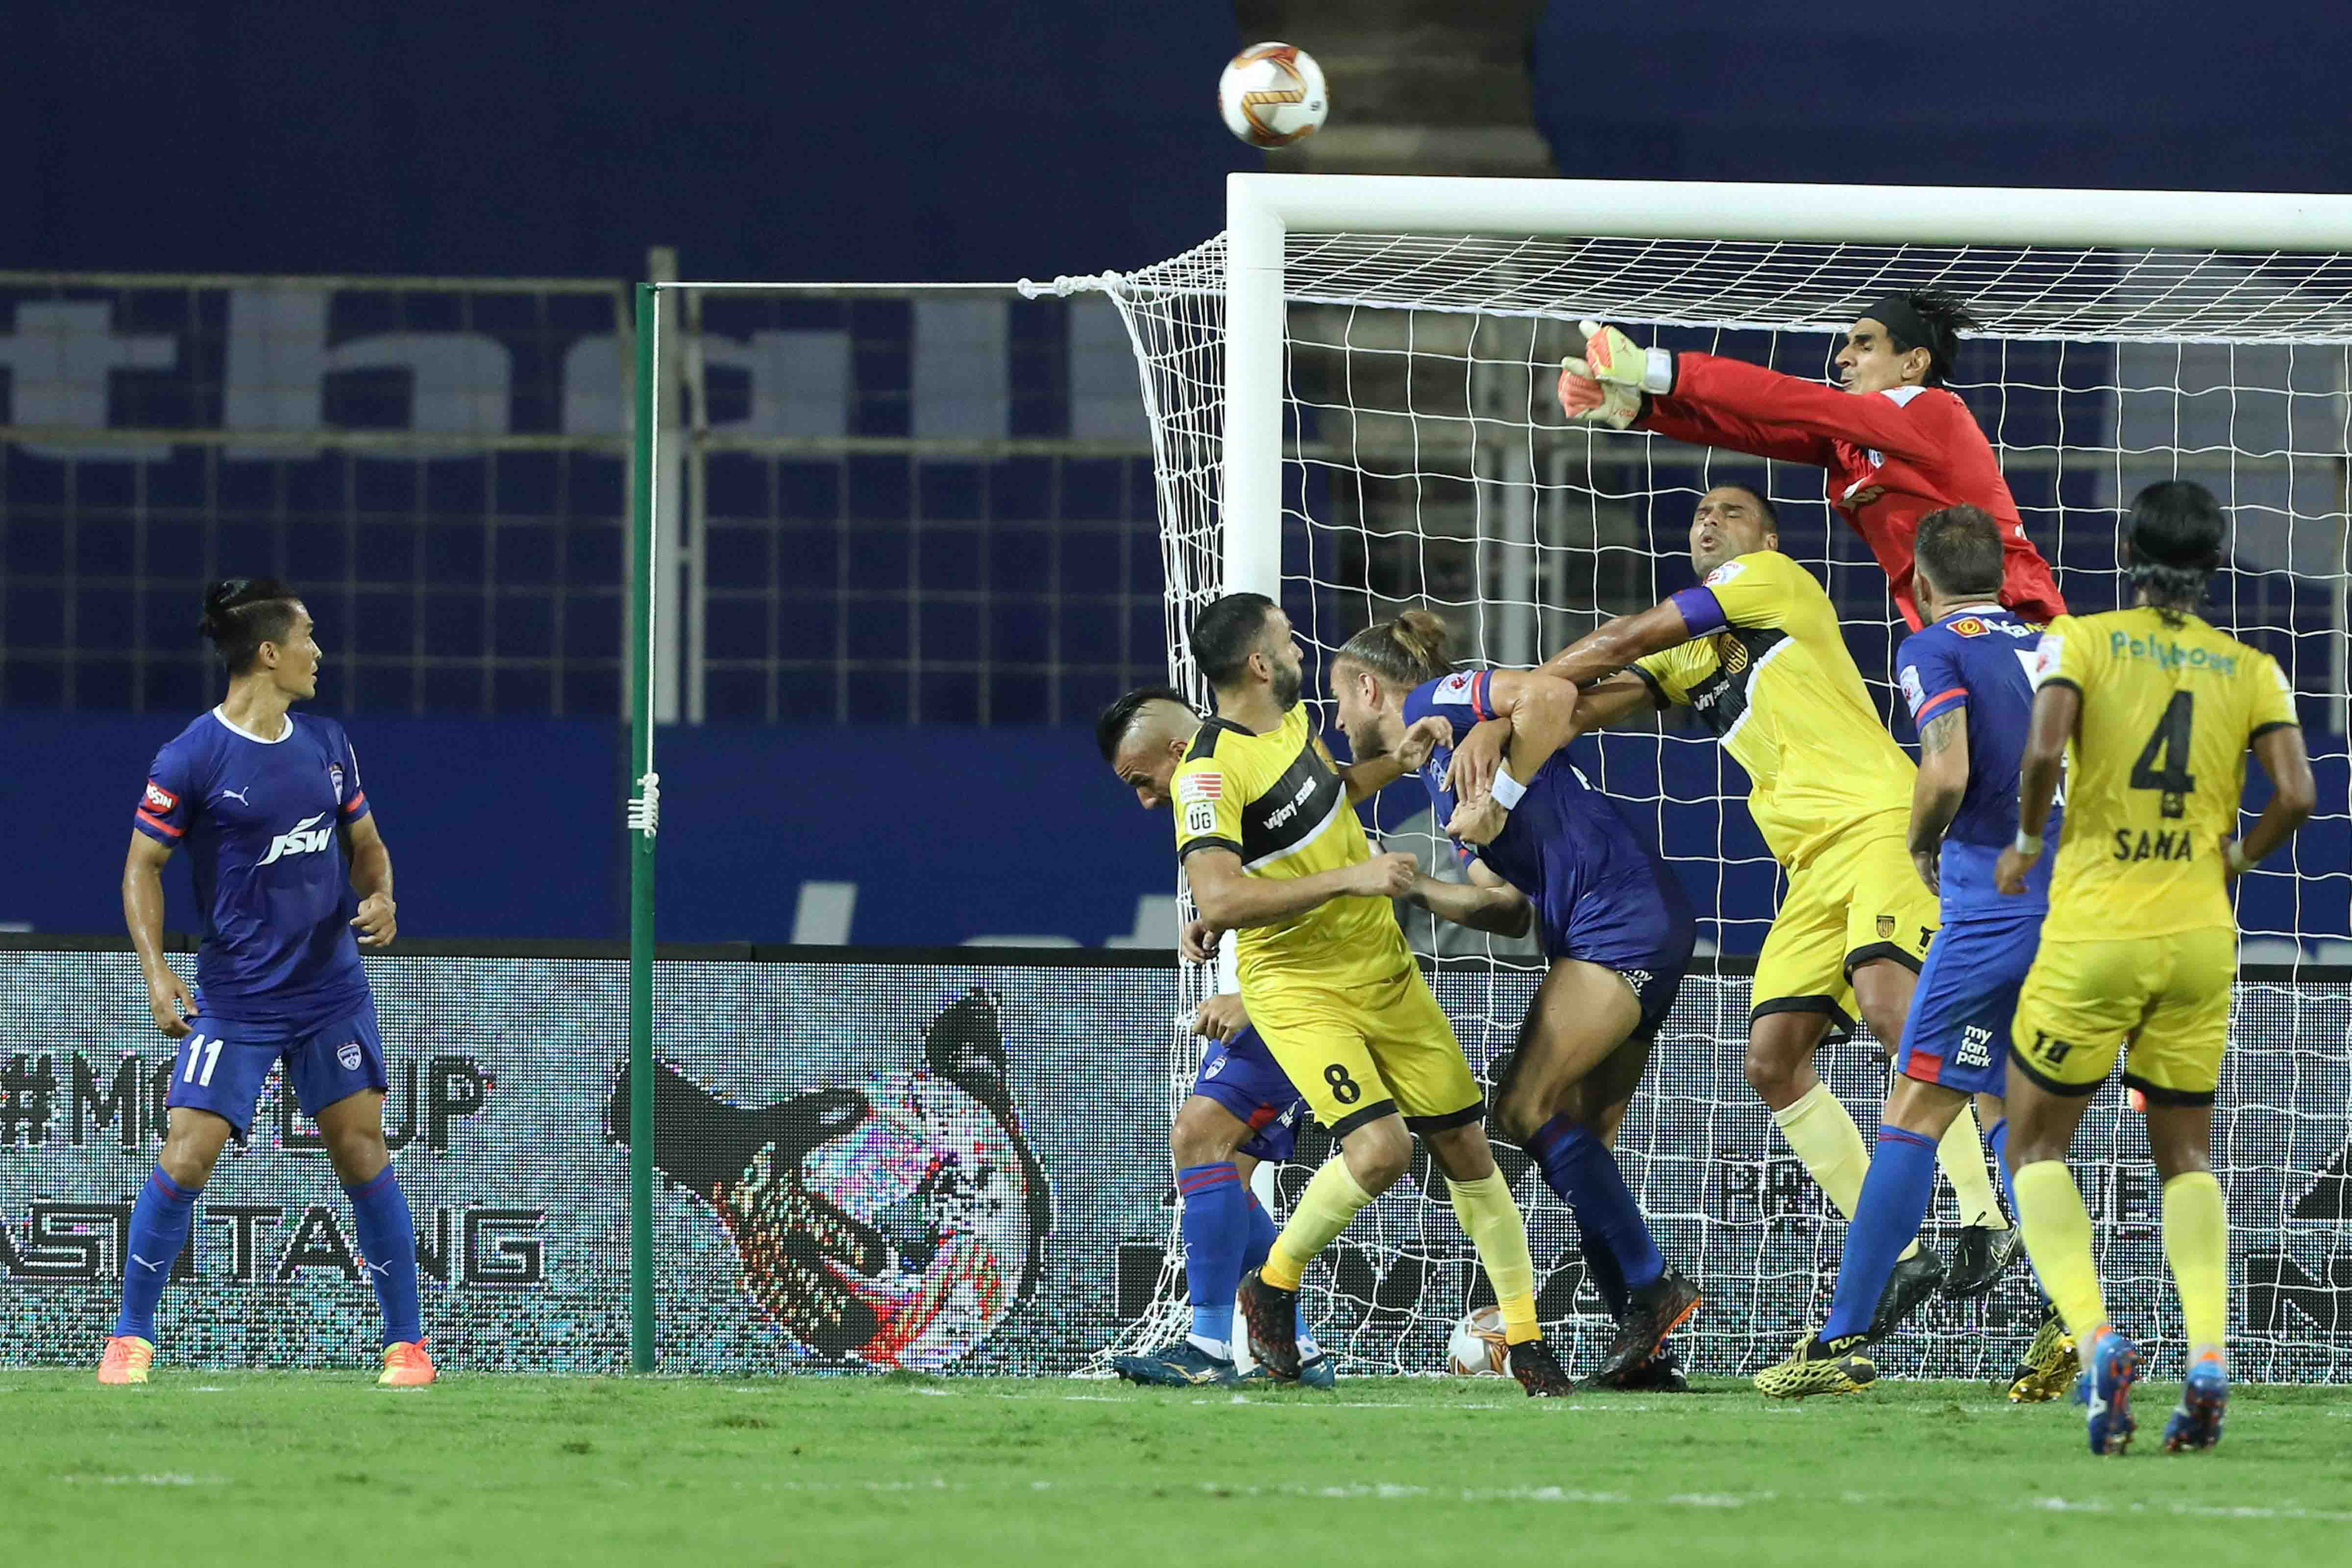 Hyderabad play goalless draw with Bengaluru in ISL